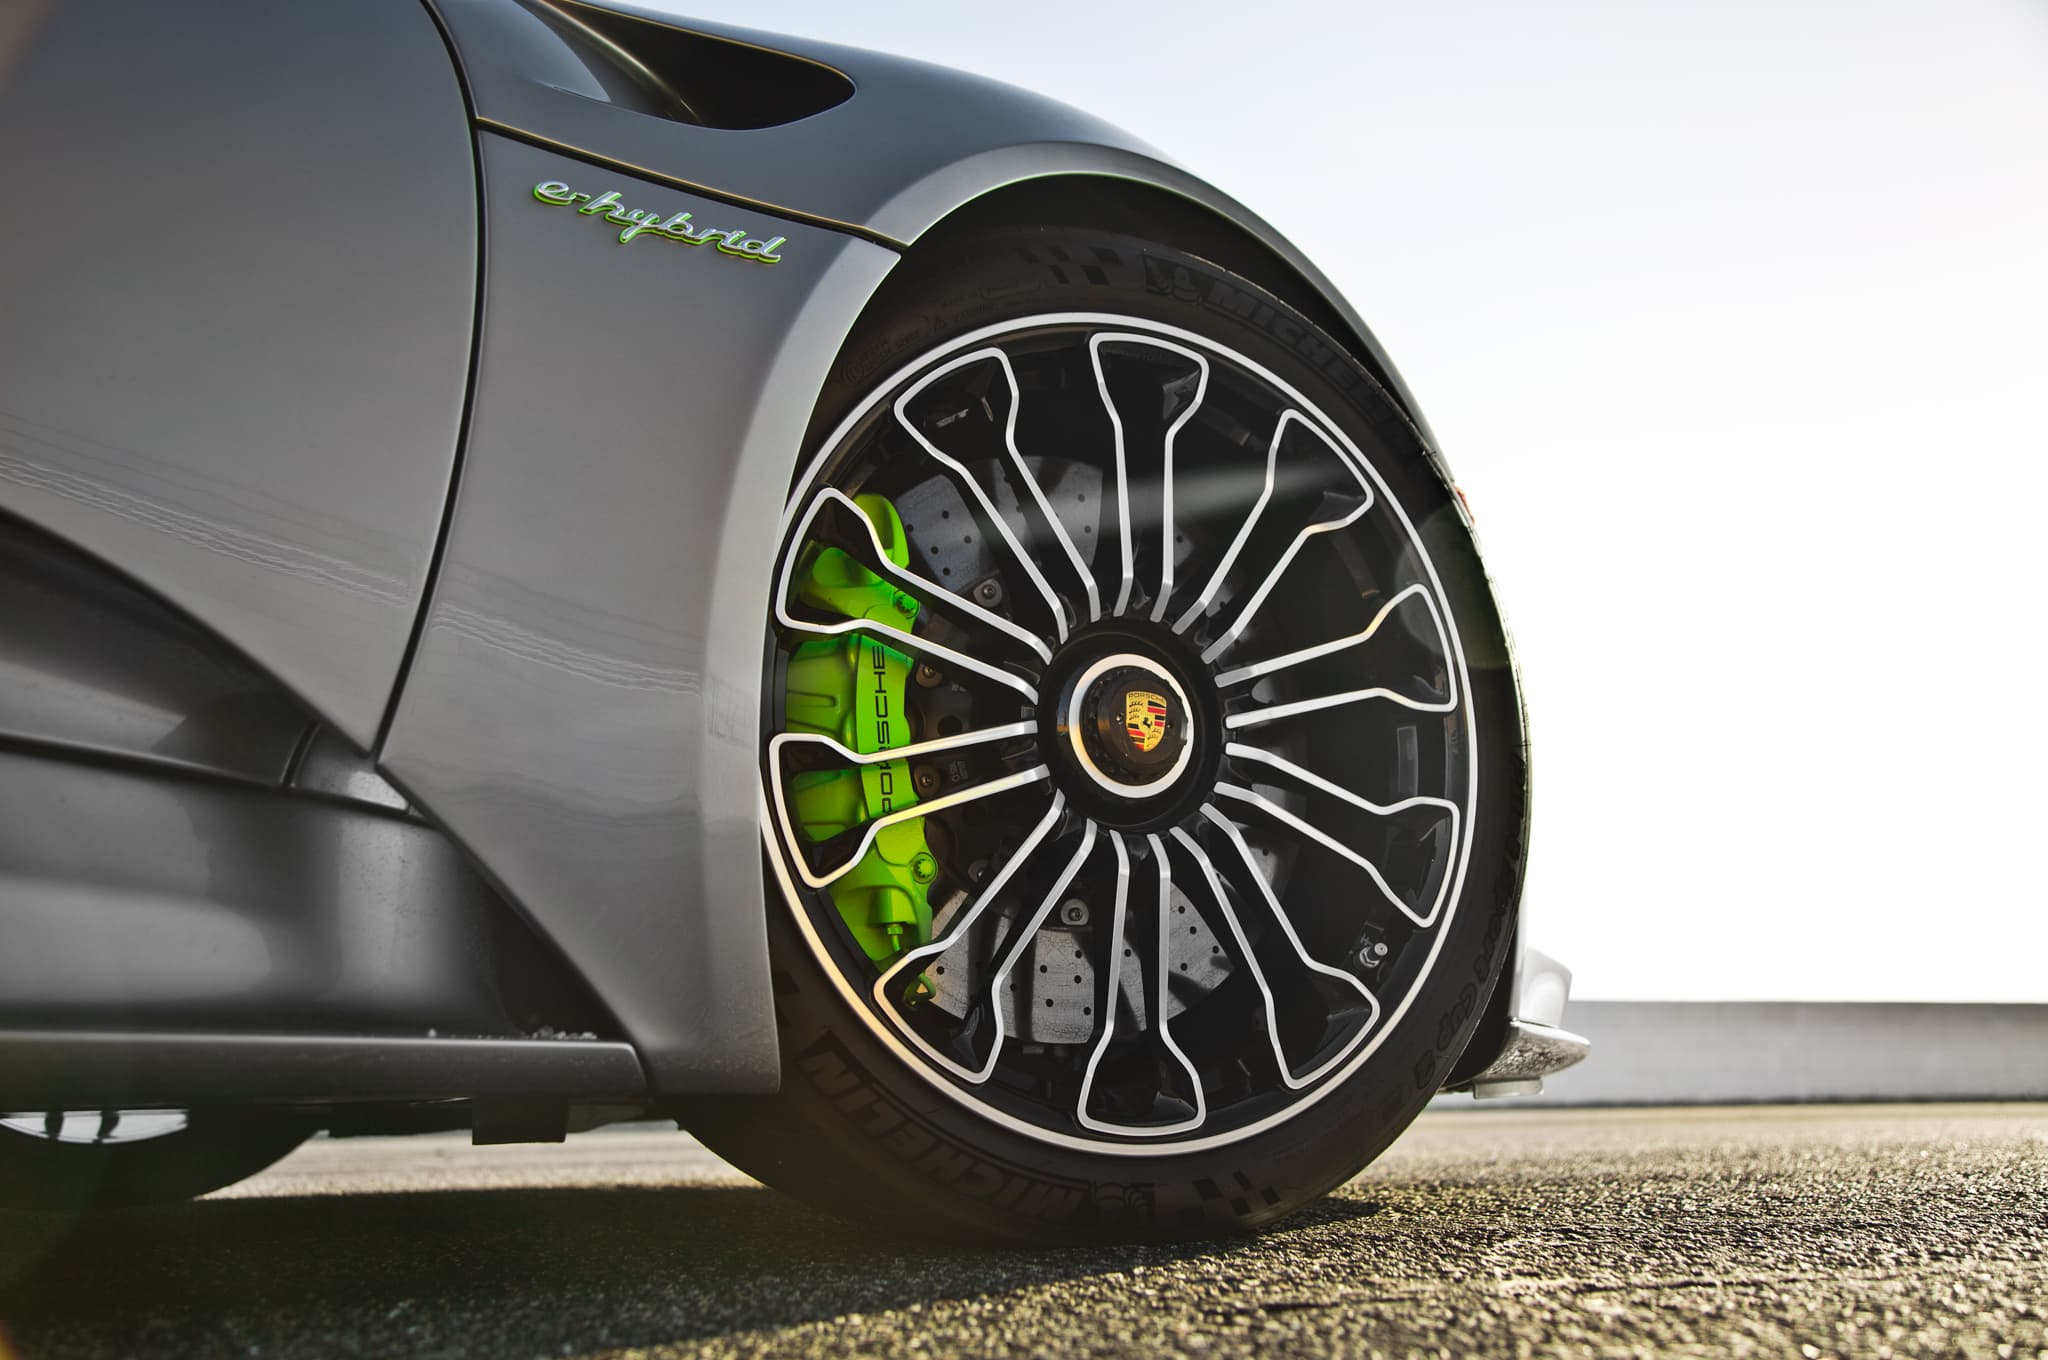 2015 Porsche 918 Spyder wheels - Five Ways to Customize your Car Without Looking Cheap